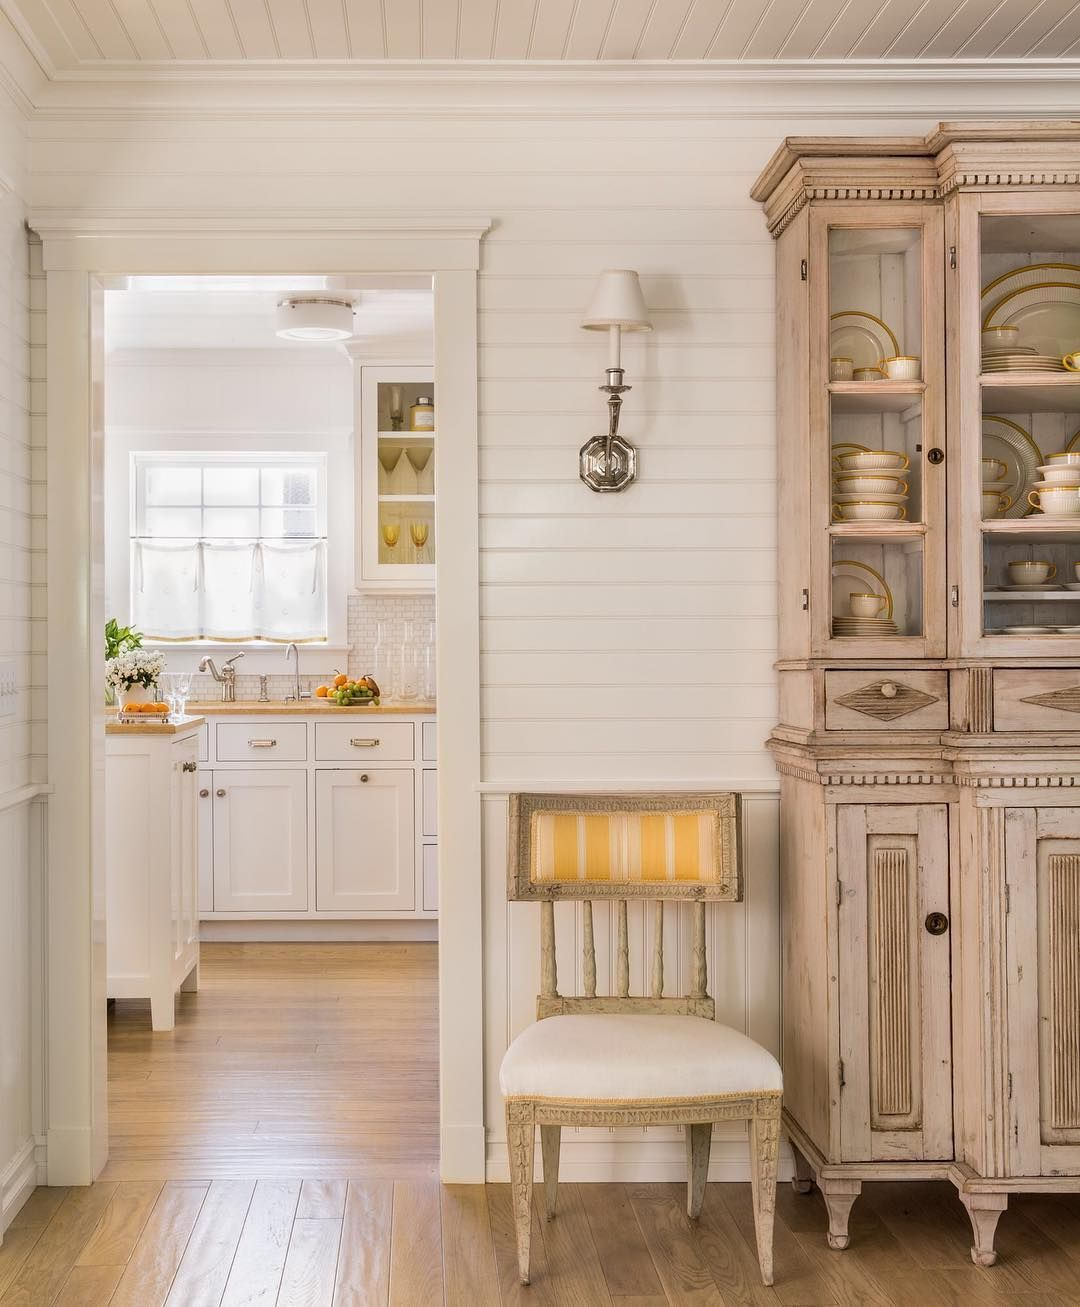 yellow and white never goes out of style photo by lisaromerein on kitchen interior yellow and white id=28414